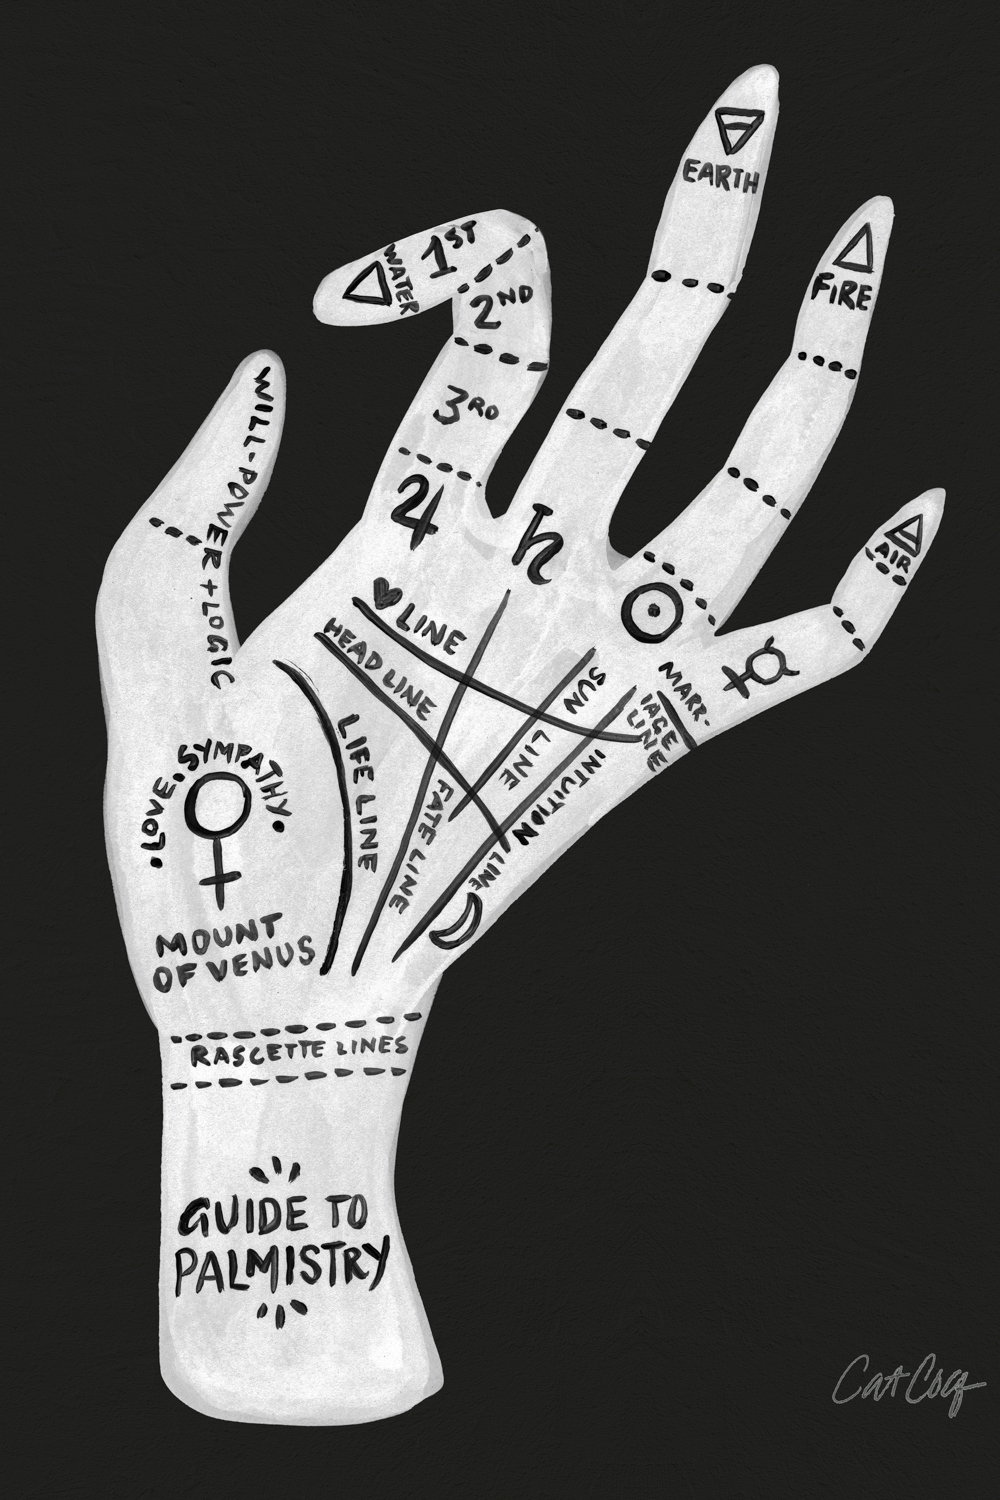 Palmistry lines and symbols on a white hand on a black background